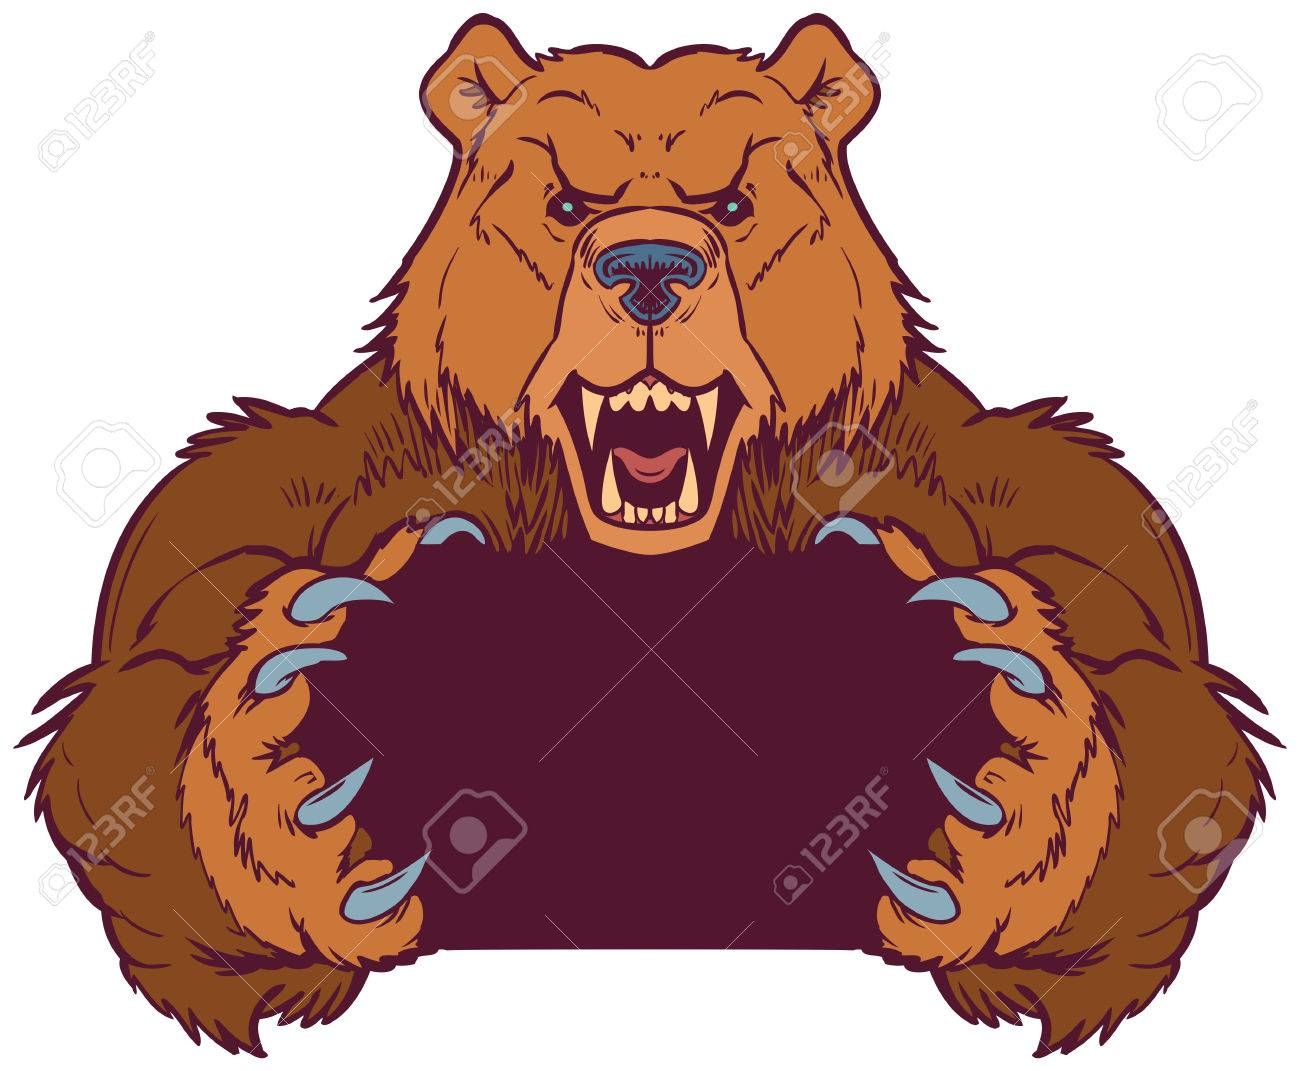 hight resolution of cartoon vector clip art illustration template of a brown bear mascot holding or gripping empty space